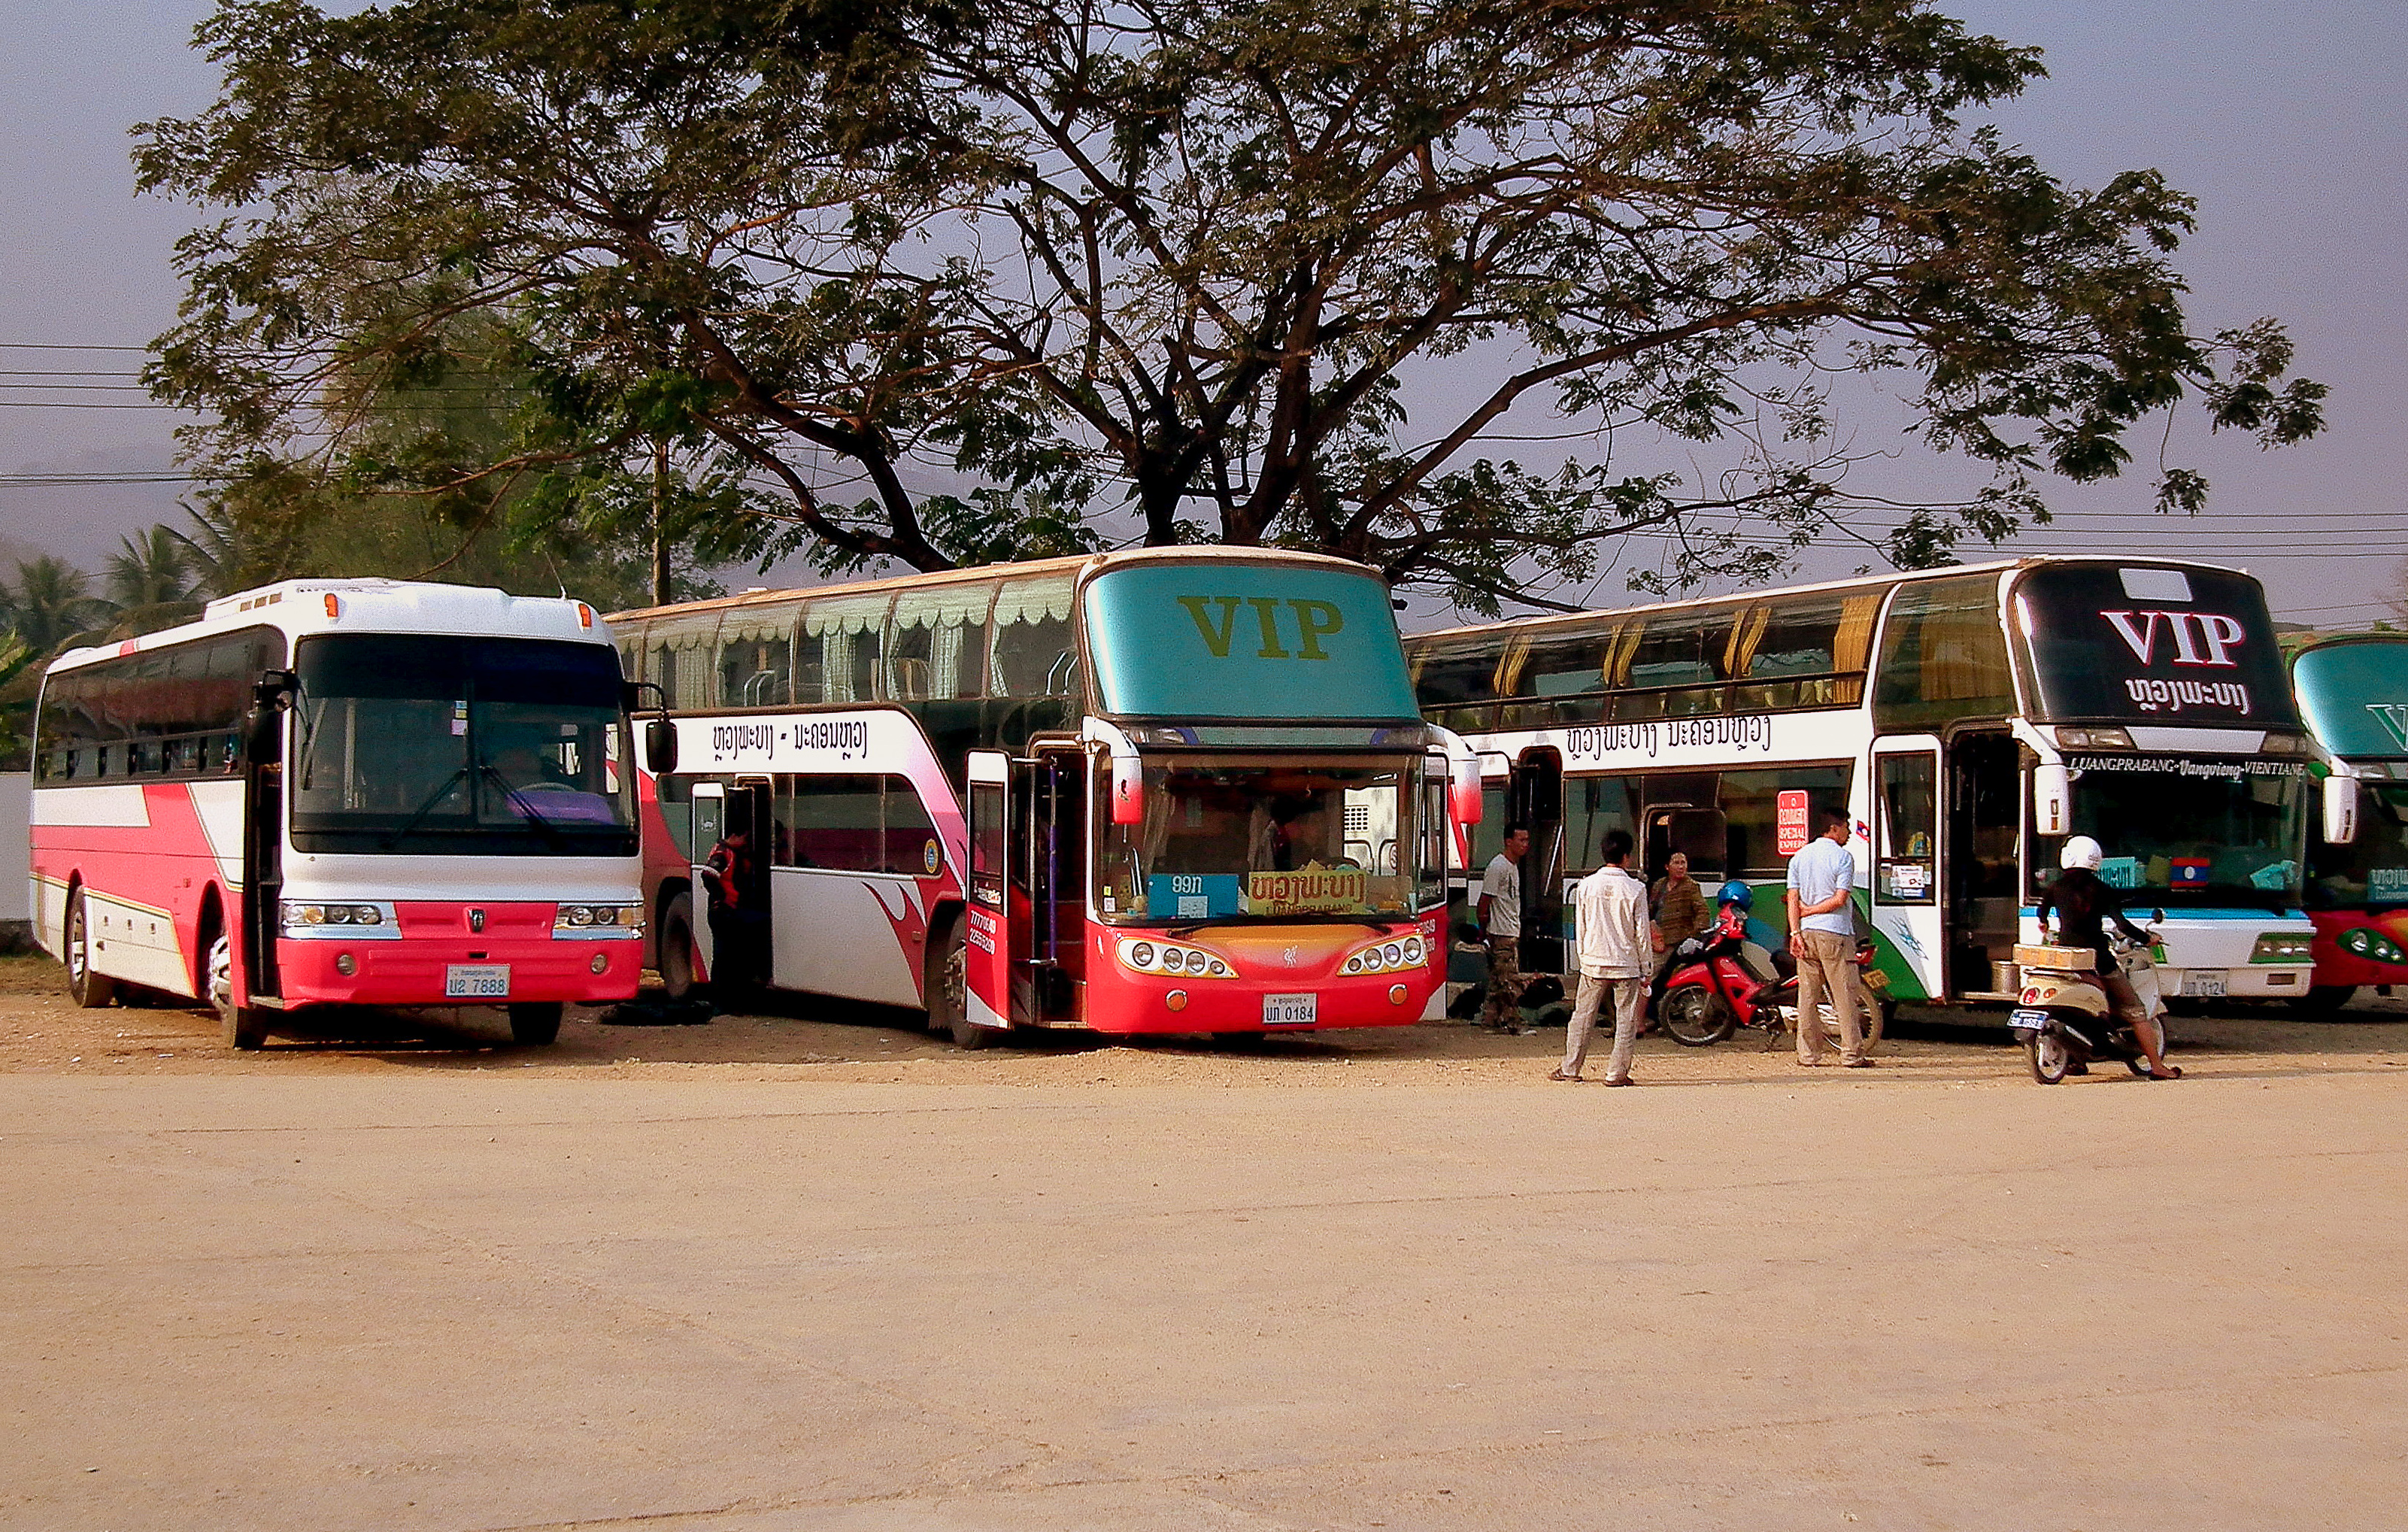 Vip bus in Luang Prabang Bus Station